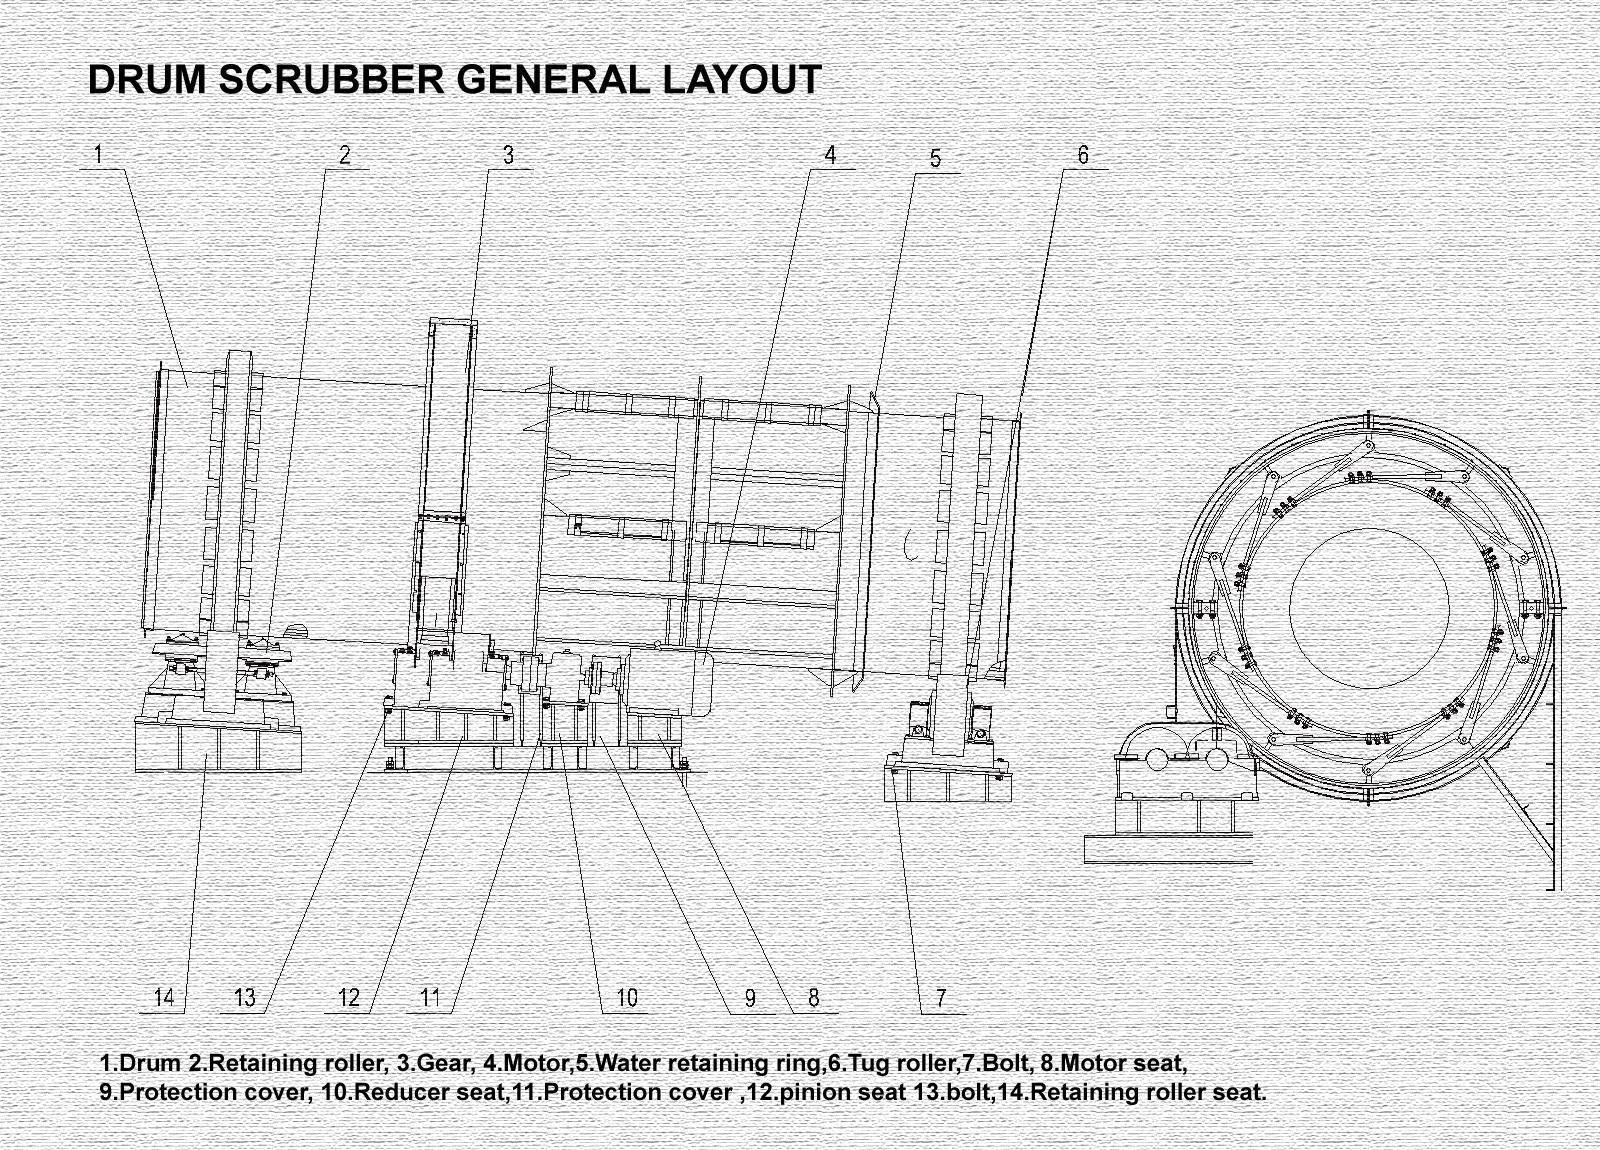 Rotary scrubber layout